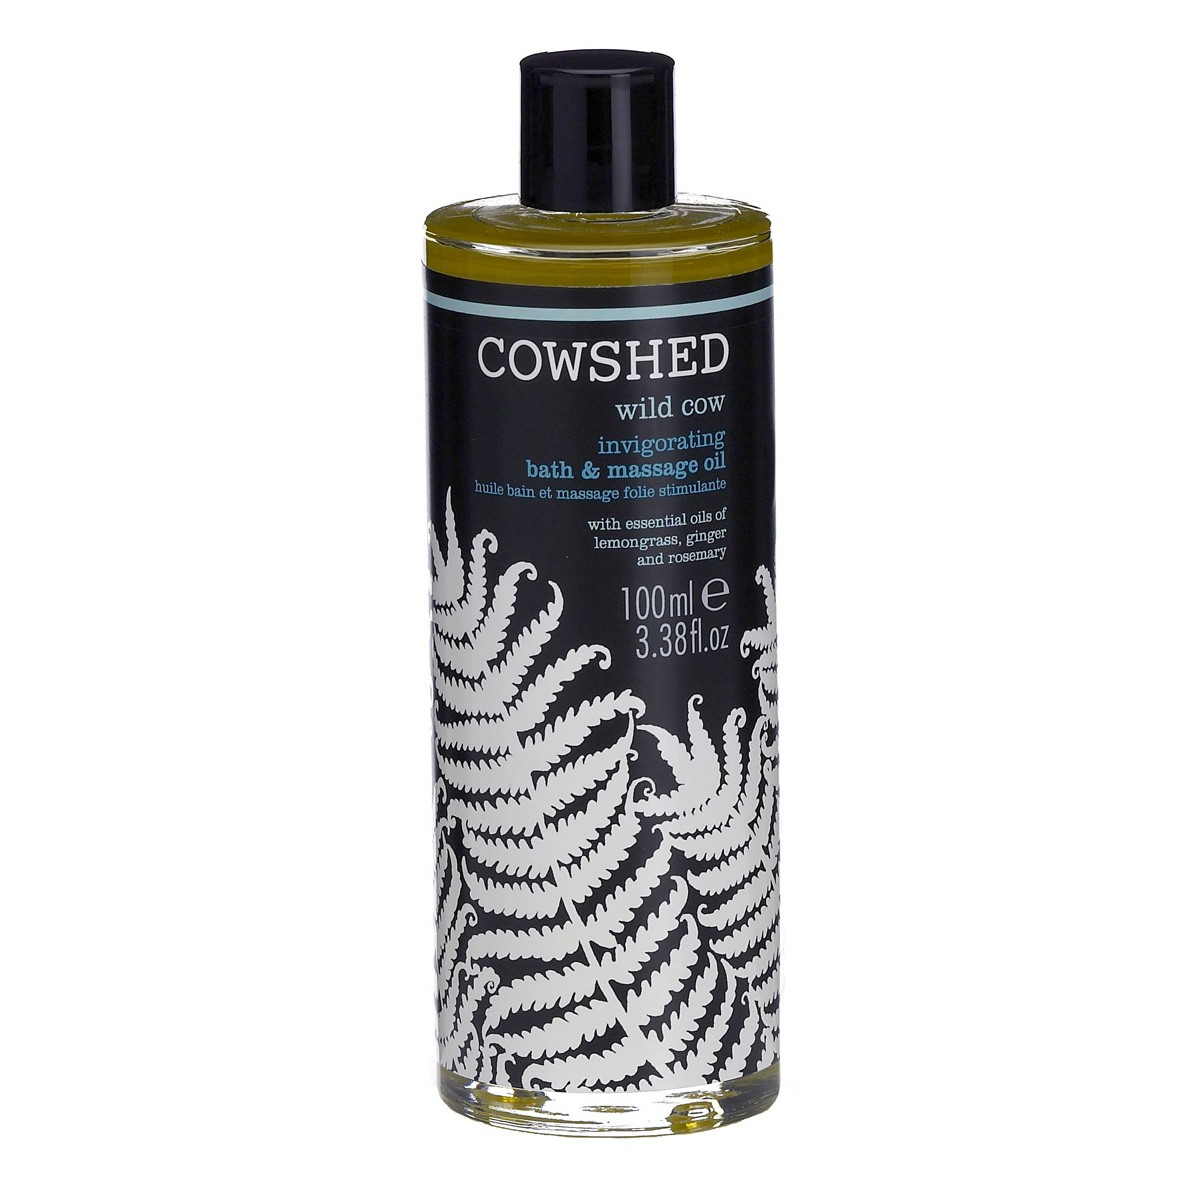 Cowshed Wild Cow Invigorating Bath & Massage Oil